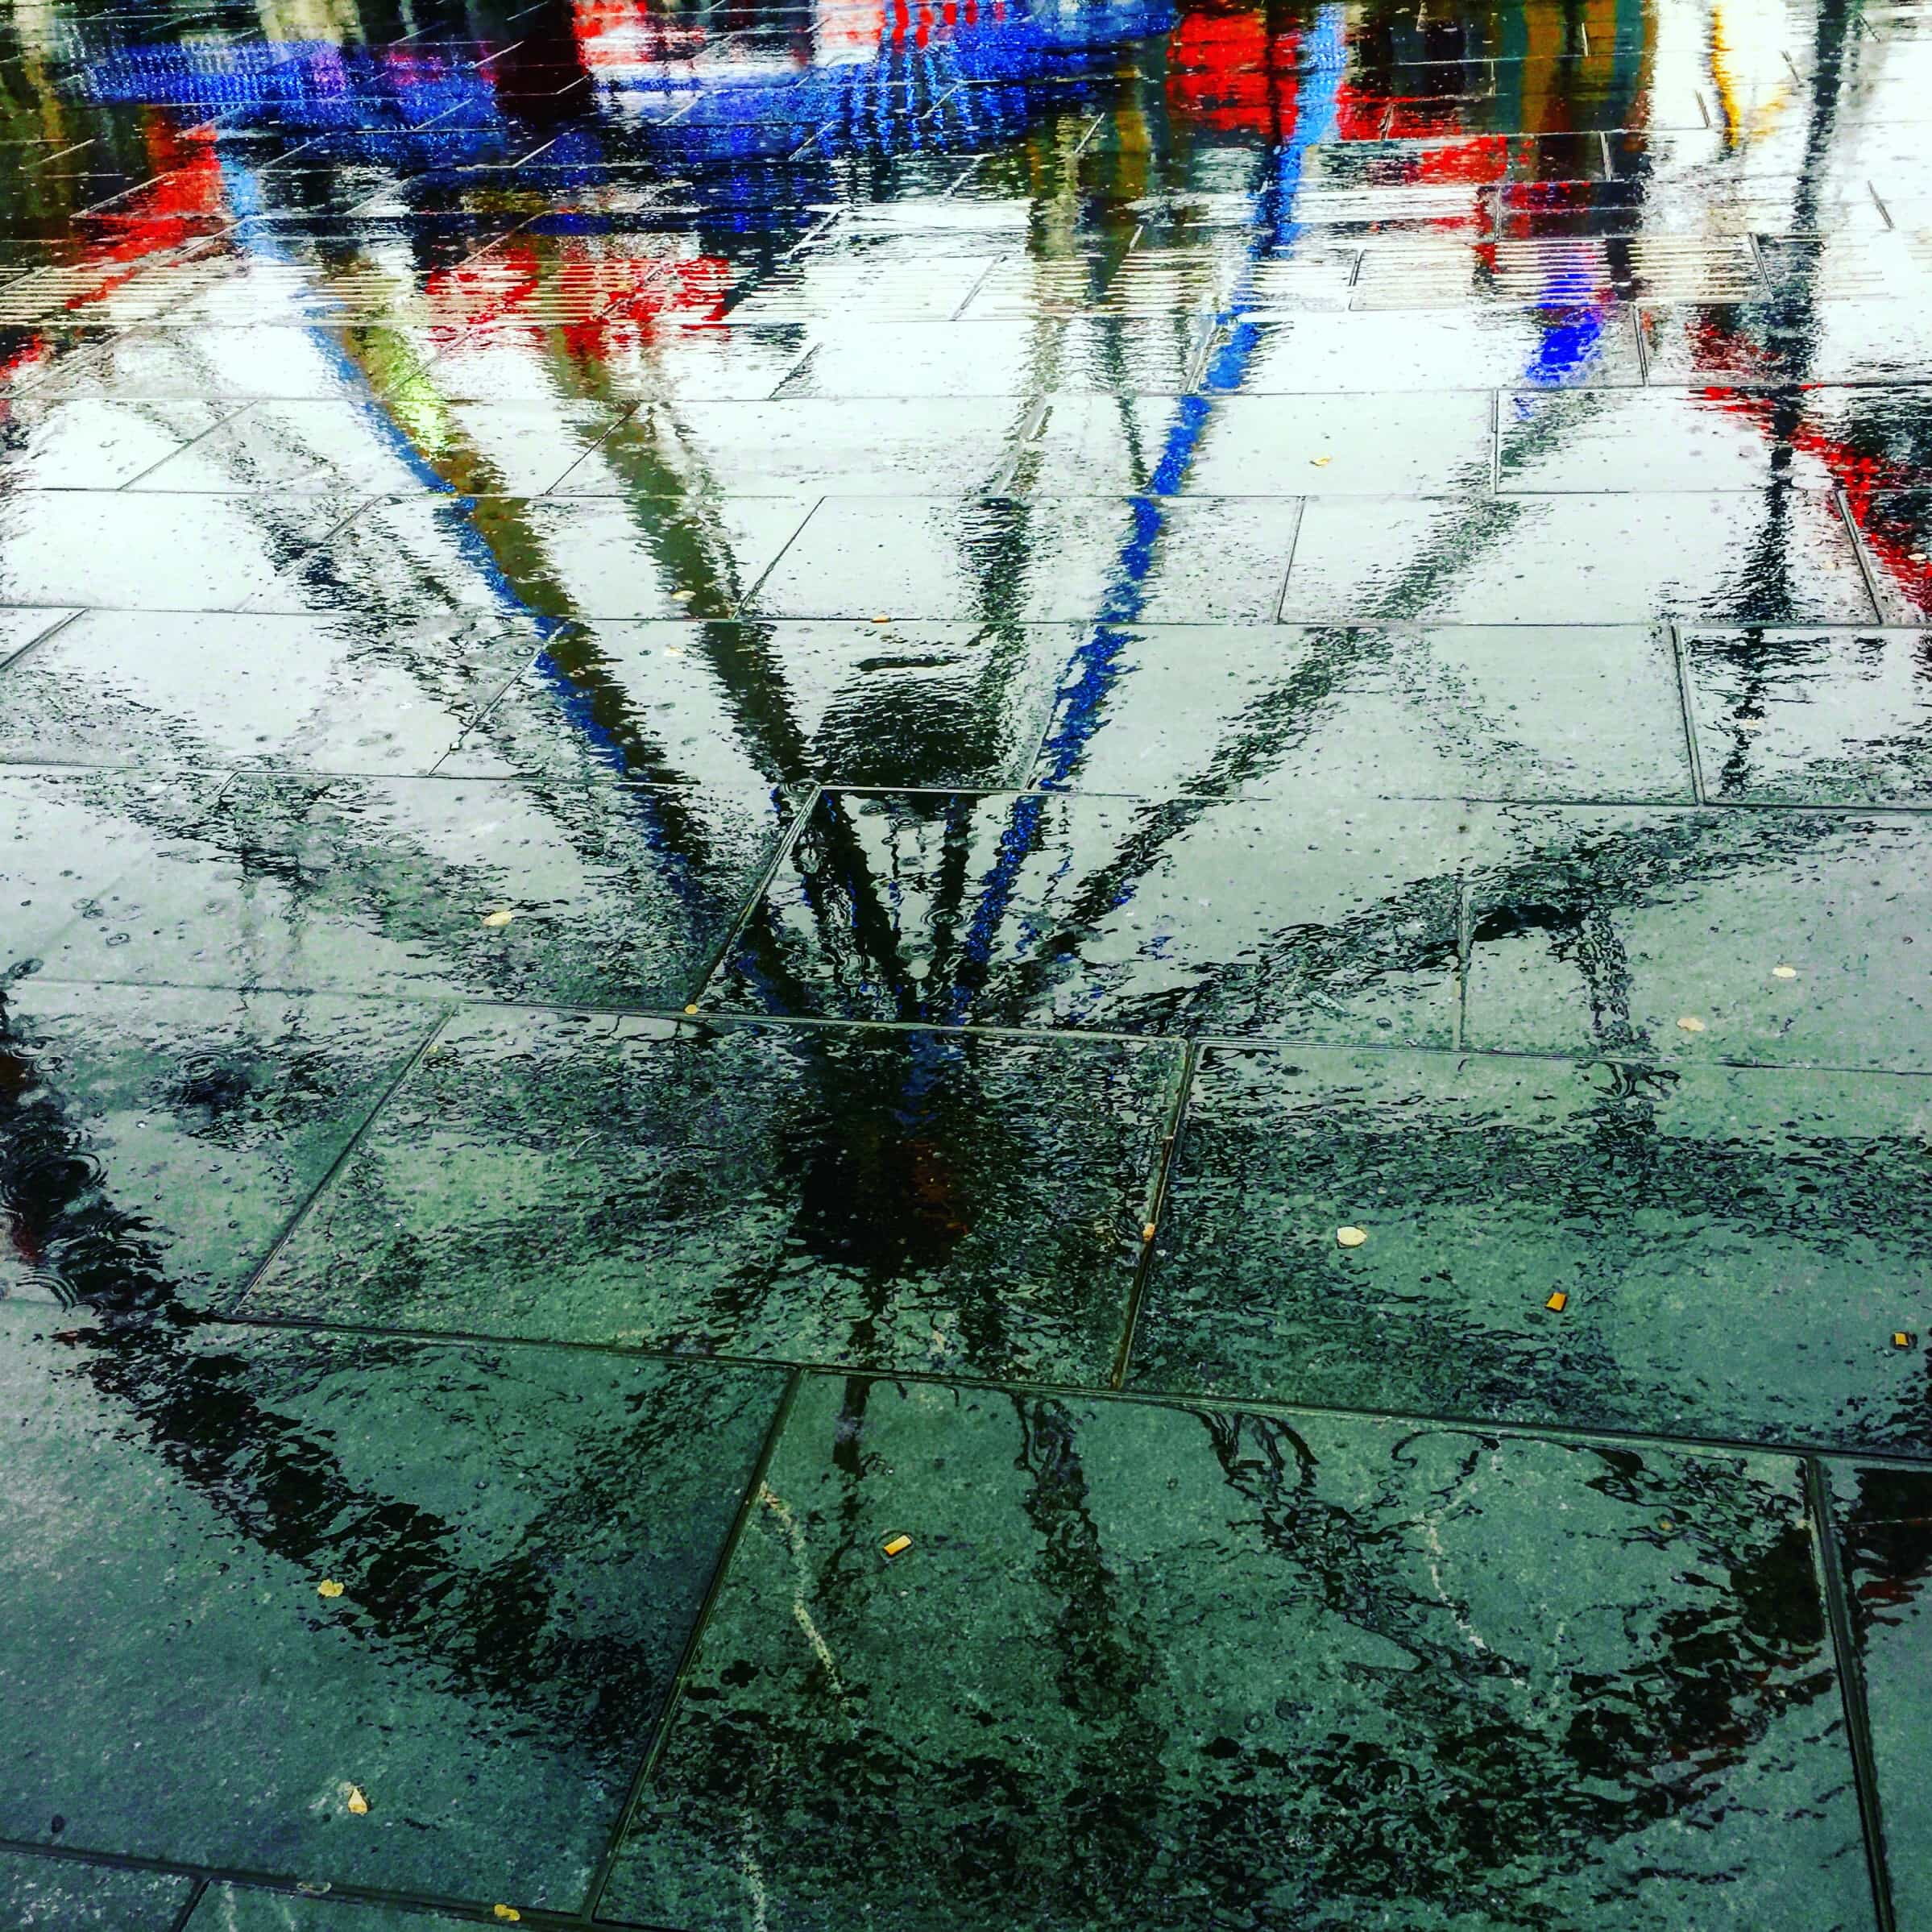 Ferris Wheel Reflected In A Puddle